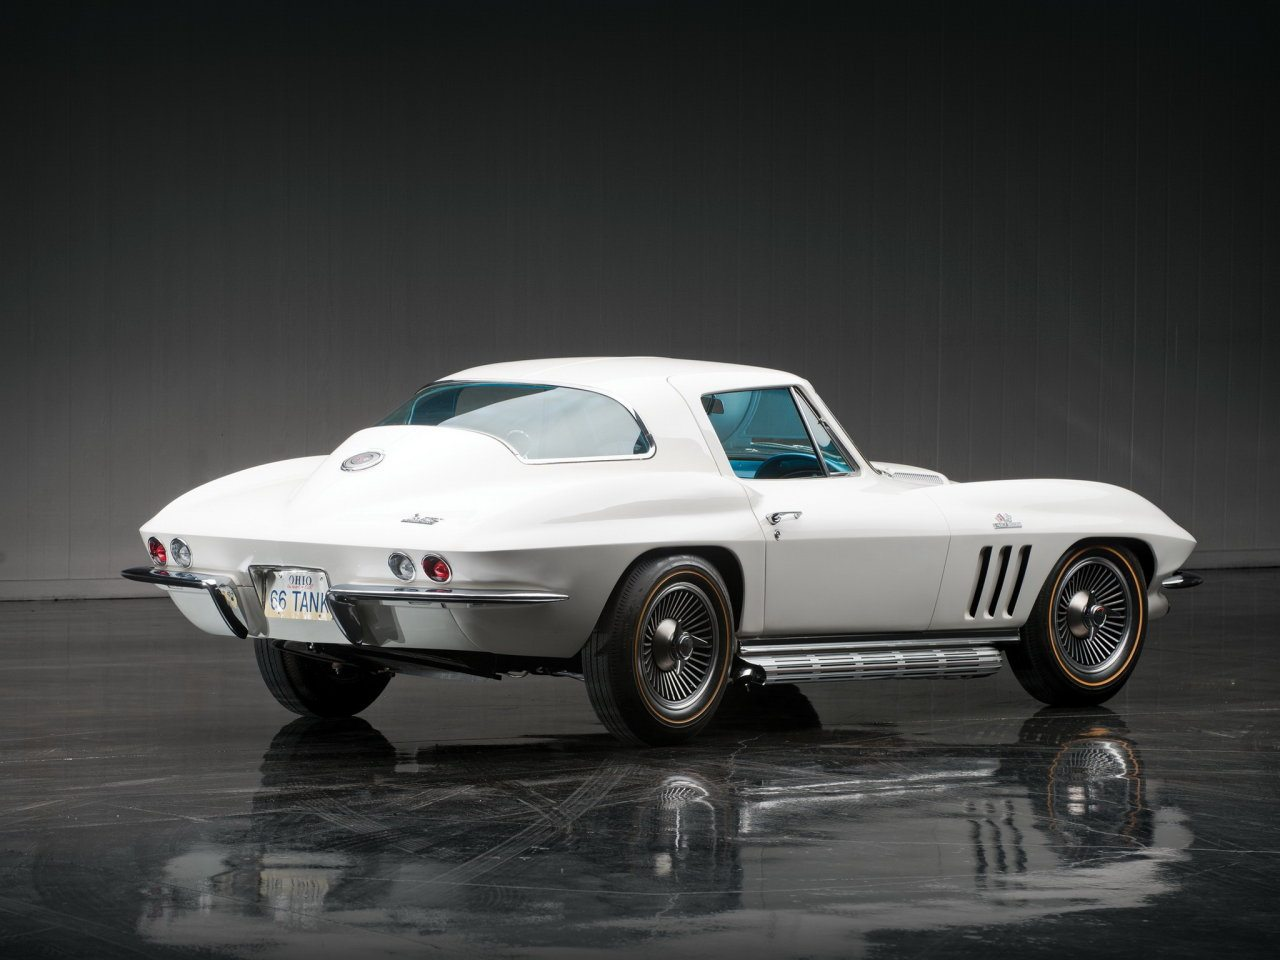 1966 c2 corvette ultimate guide overview specs vin info performance more. Black Bedroom Furniture Sets. Home Design Ideas